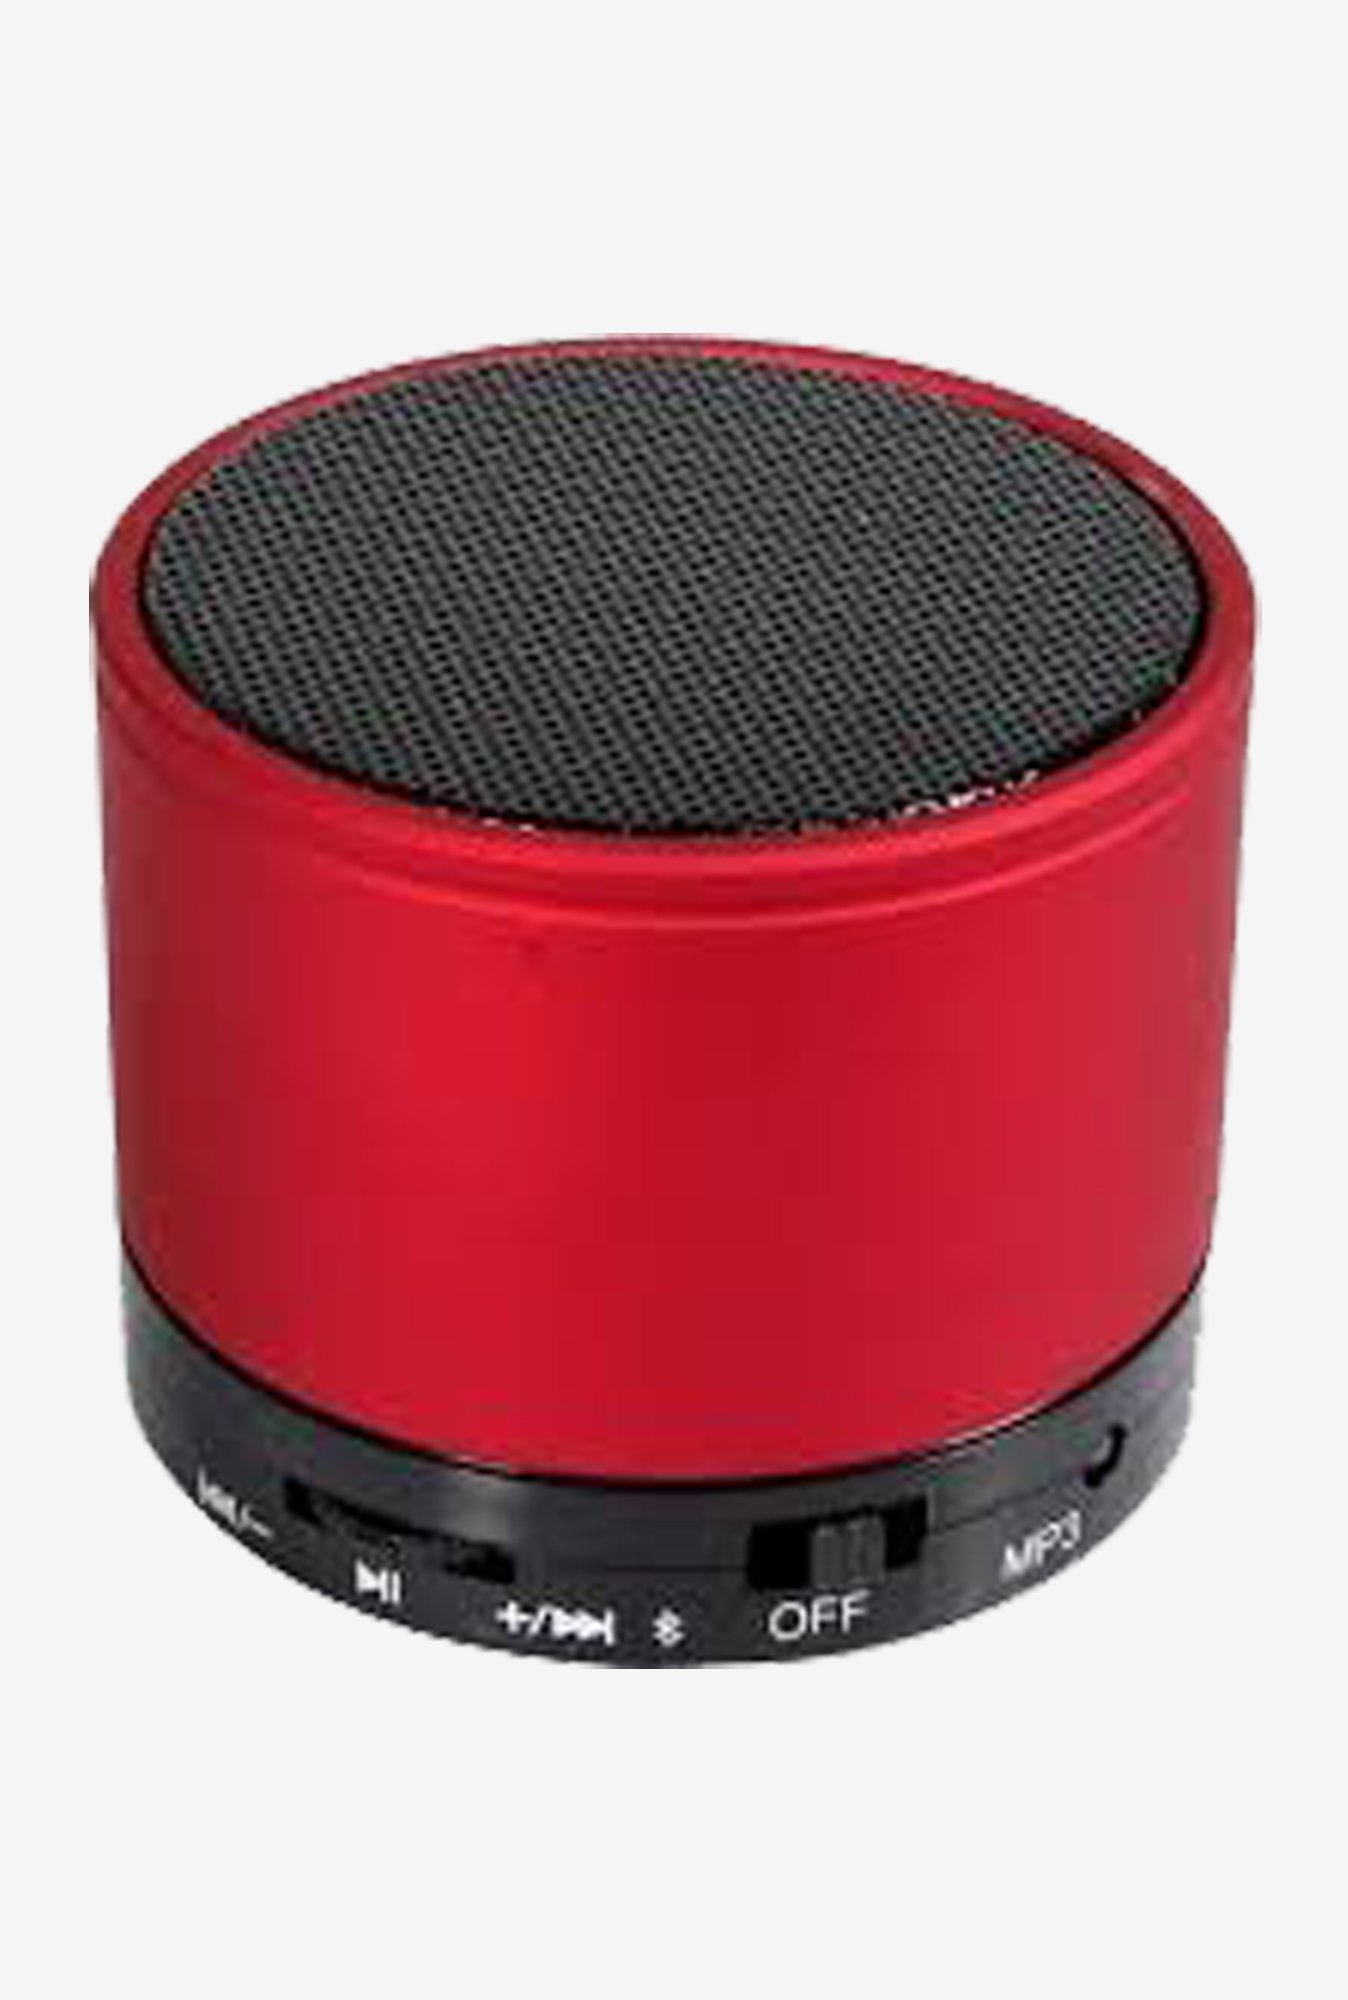 UBON BT-20 Wireless Bluetooth Speaker (Black)